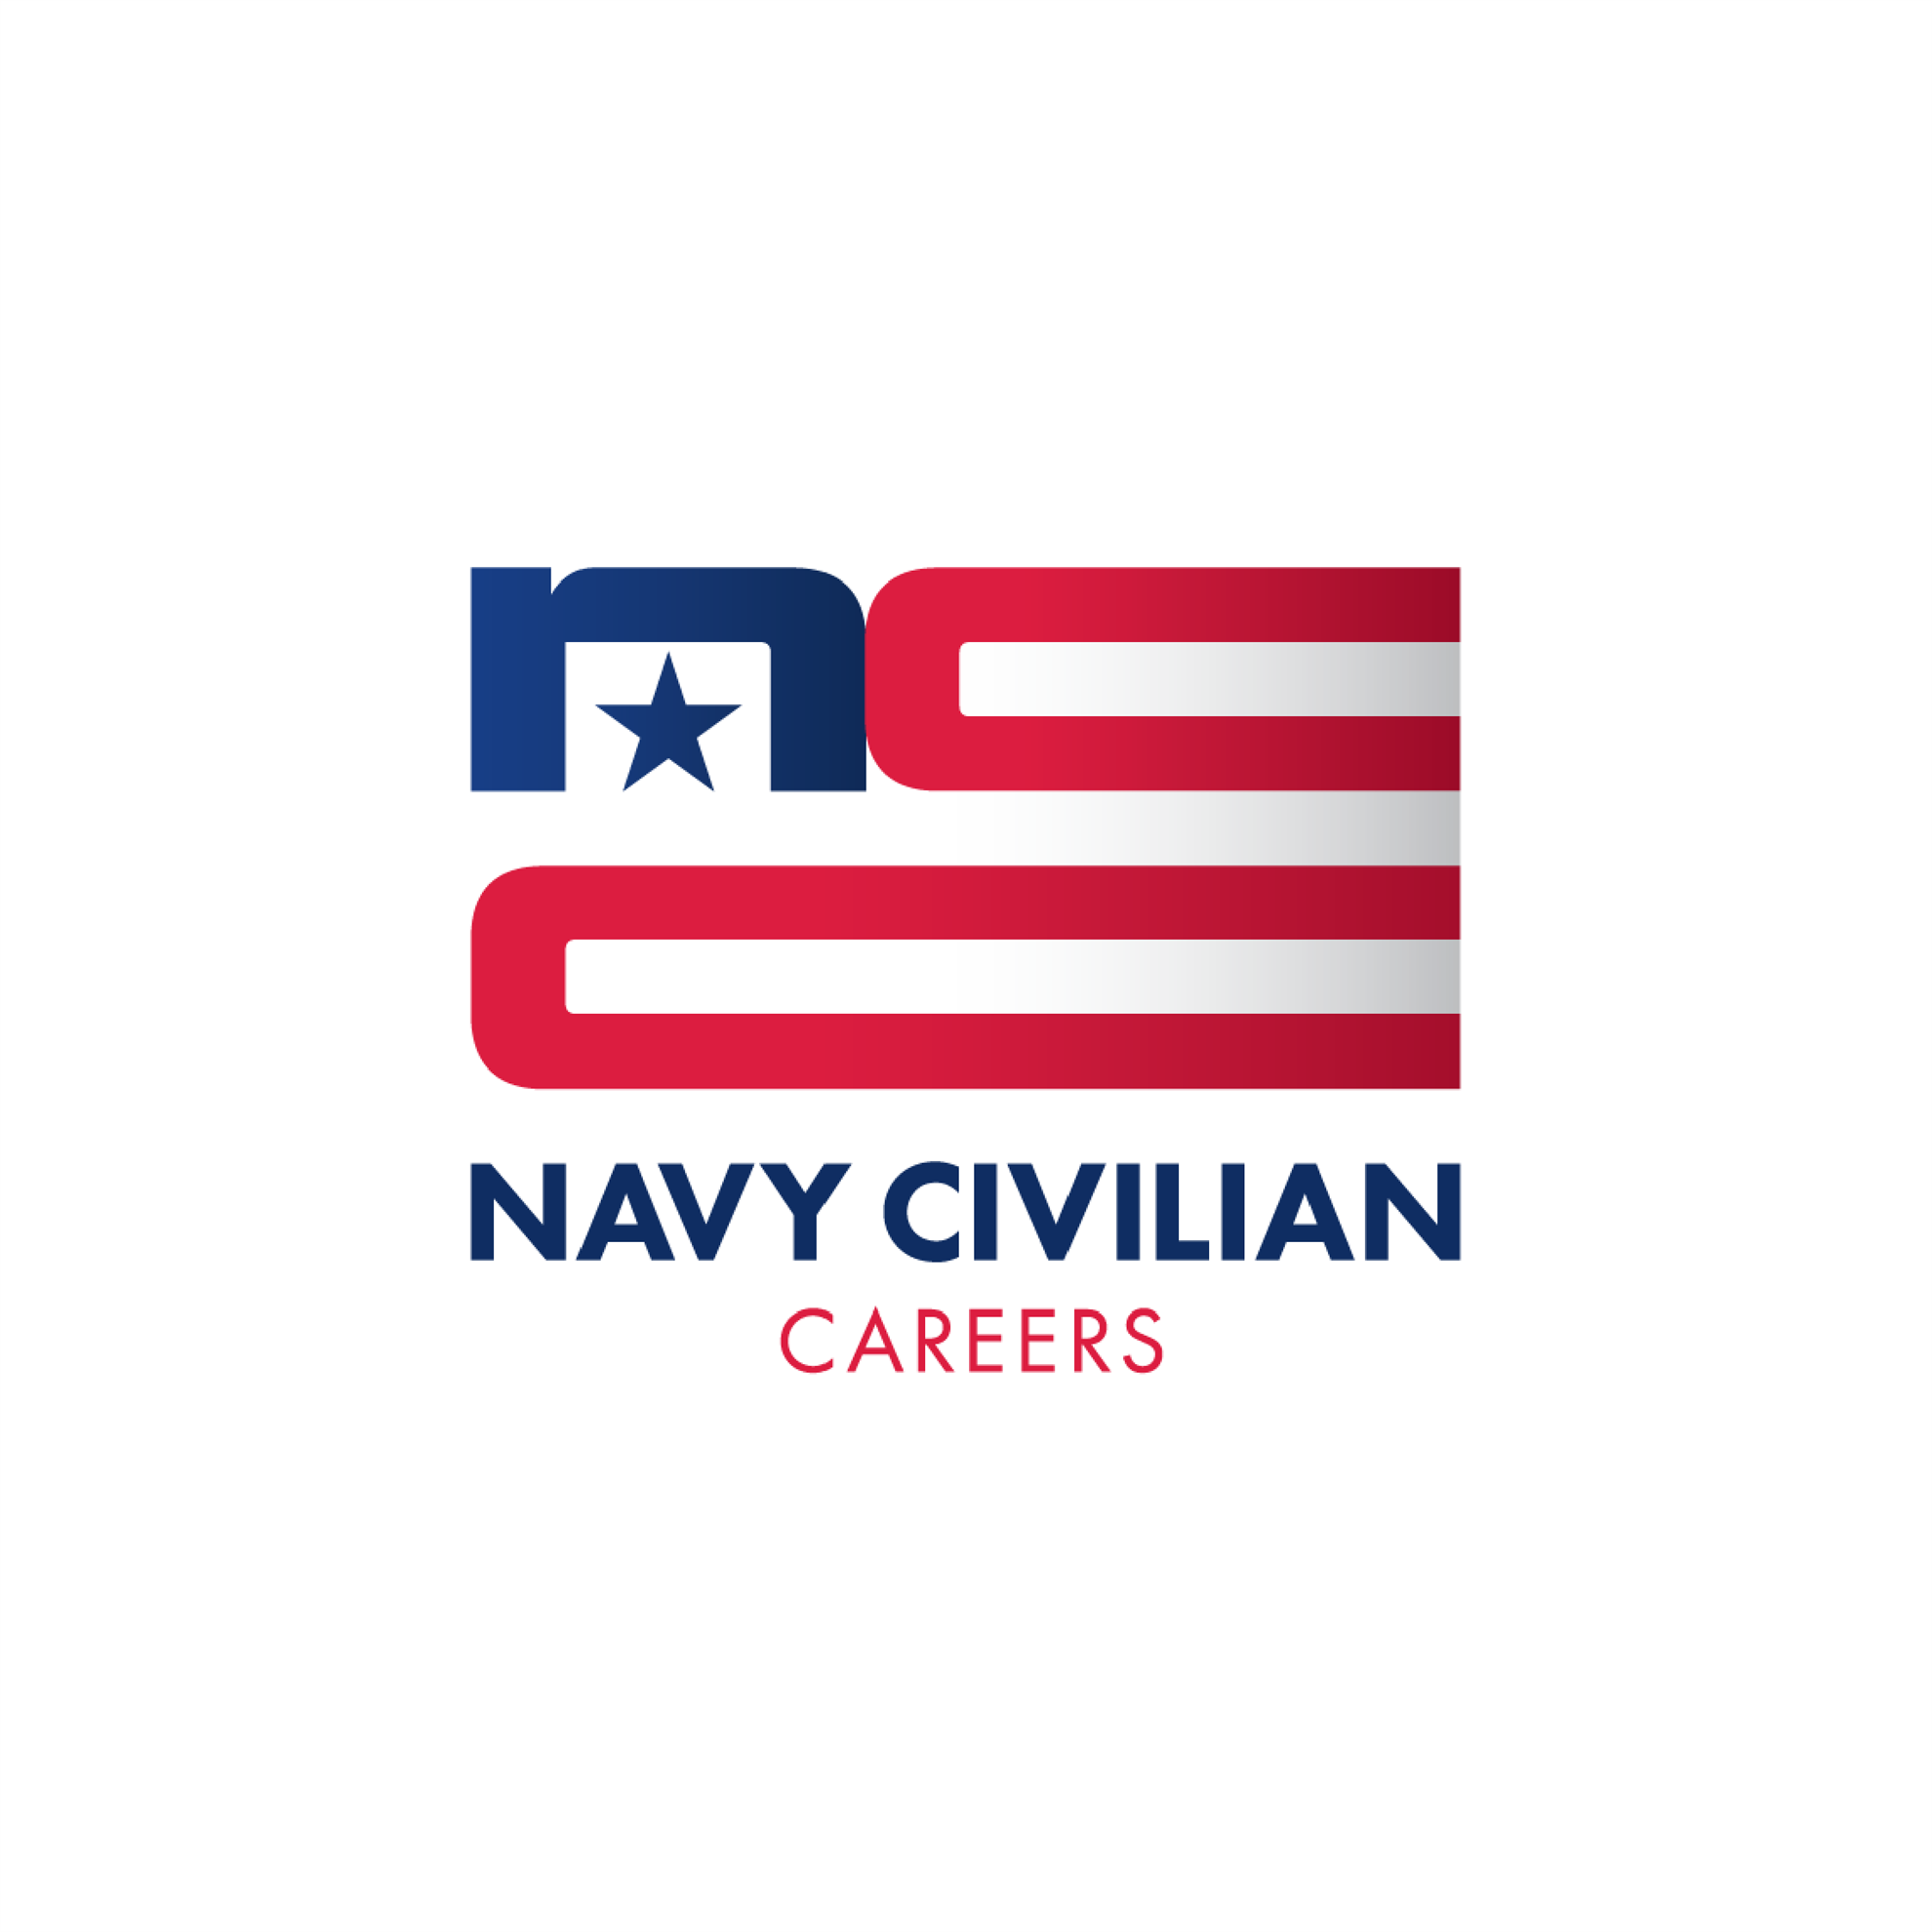 Navy Civilian Careers Logo